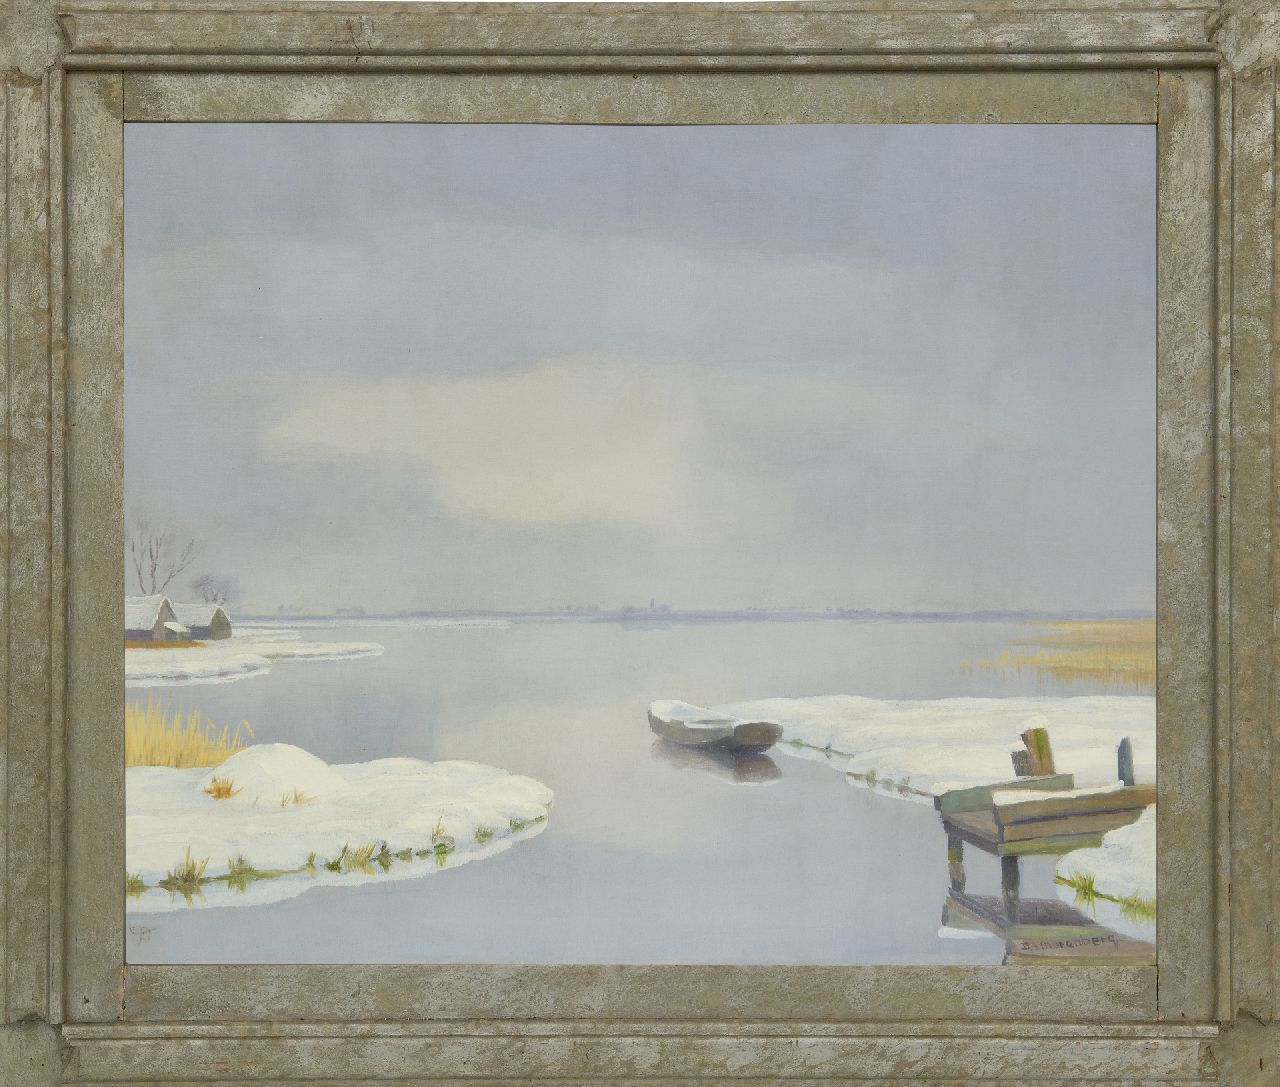 Smorenberg D.  | Dirk Smorenberg | Paintings offered for sale | A winter water landscape near Loosdrecht, oil on canvas 50.2 x 60.5 cm, signed l.r.